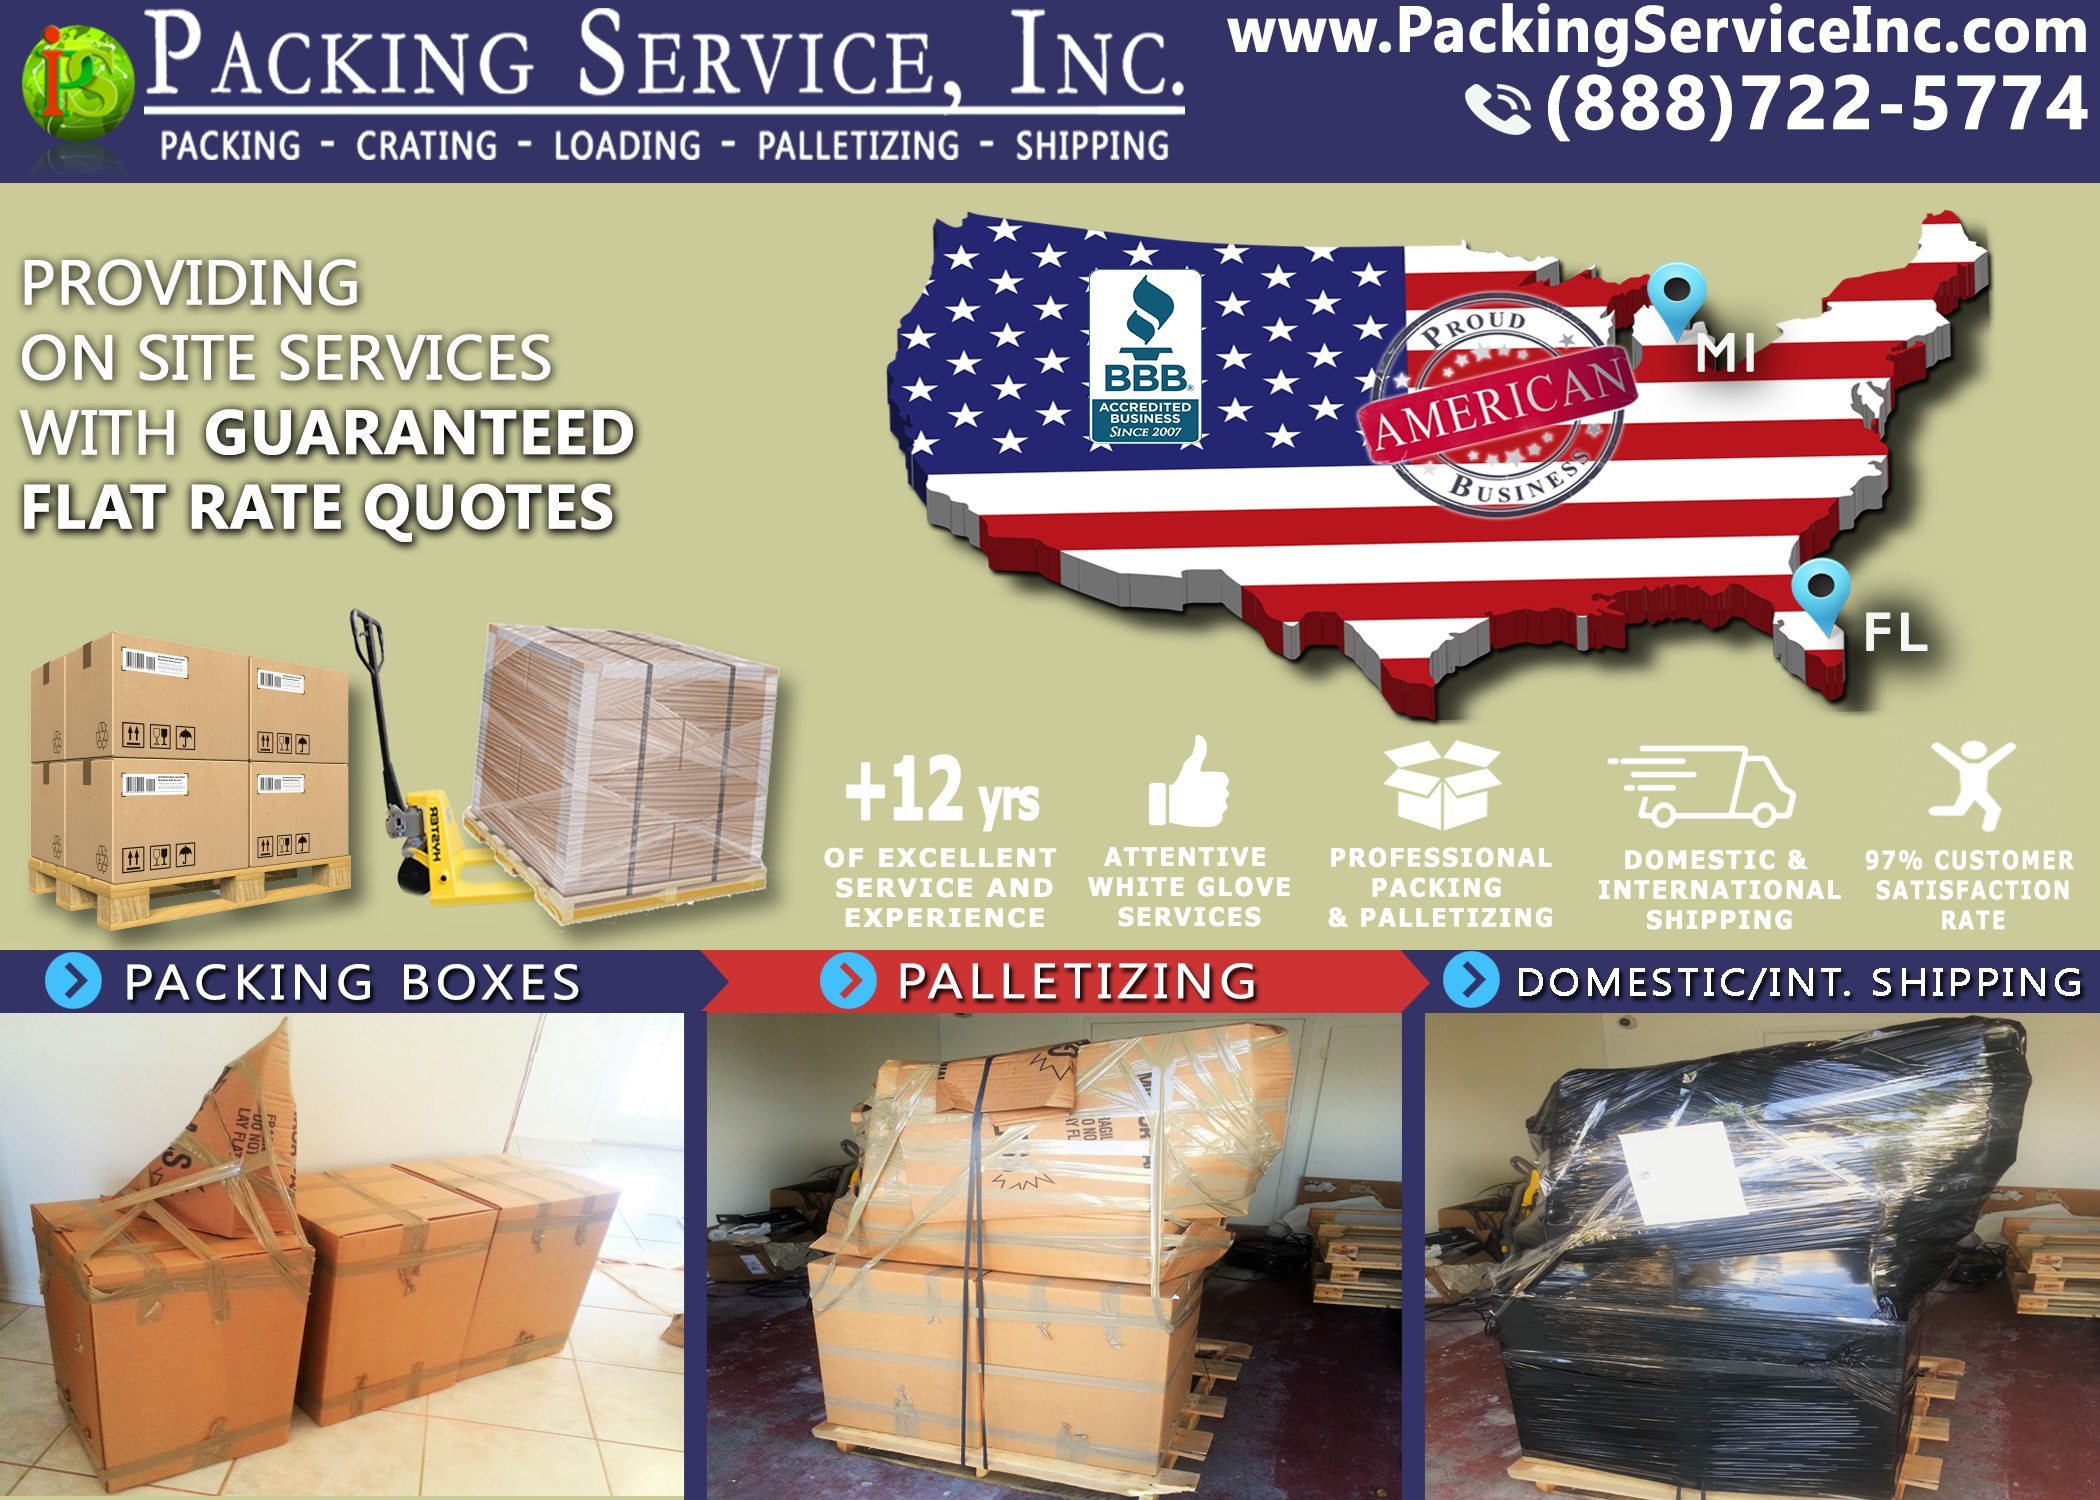 Packing Service, Inc. Ships Domestic and International